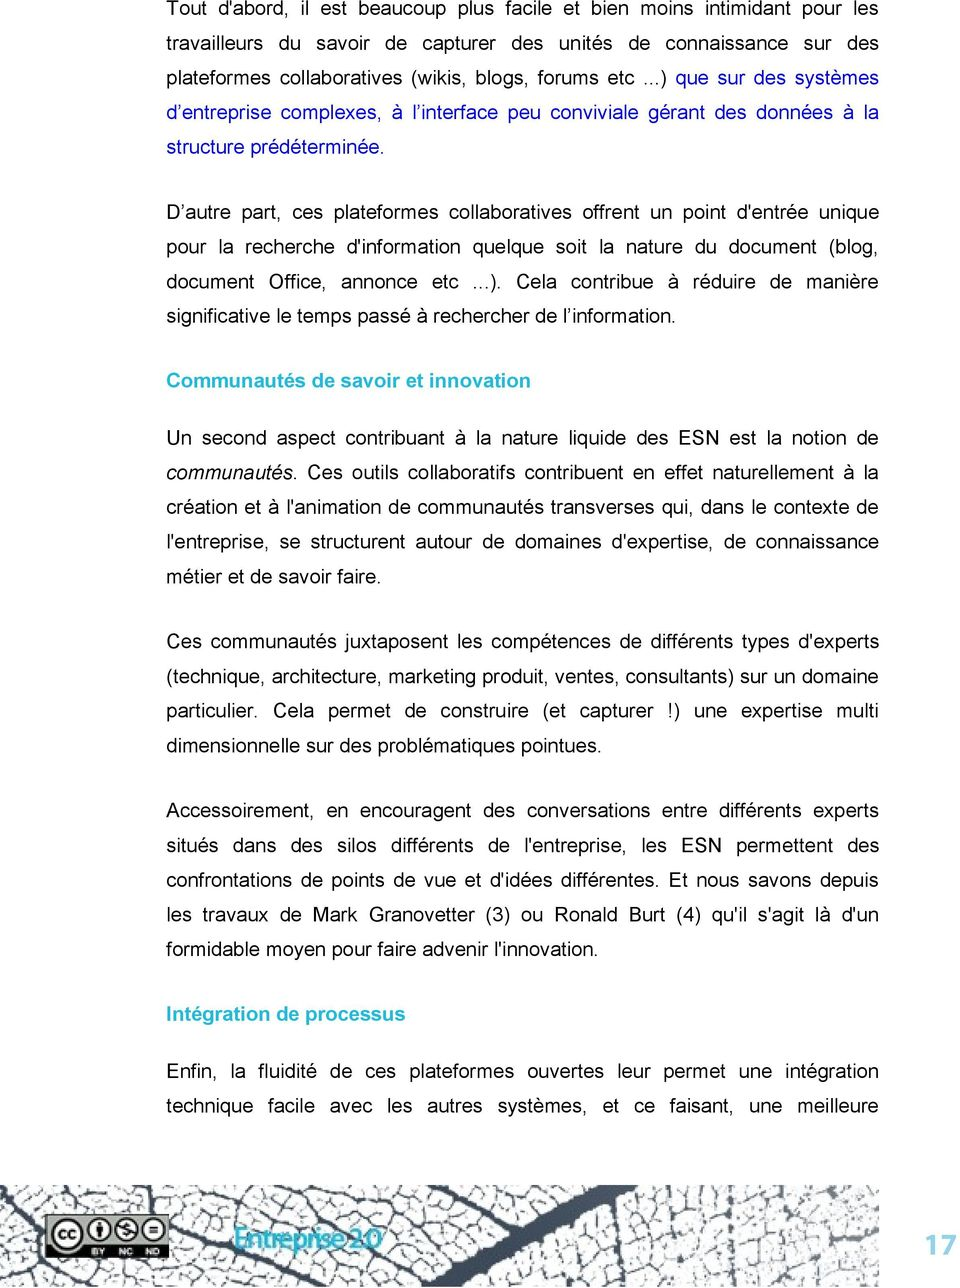 D autre part, ces plateformes collaboratives offrent un point d'entrée unique pour la recherche d'information quelque soit la nature du document (blog, document Office, annonce etc...).